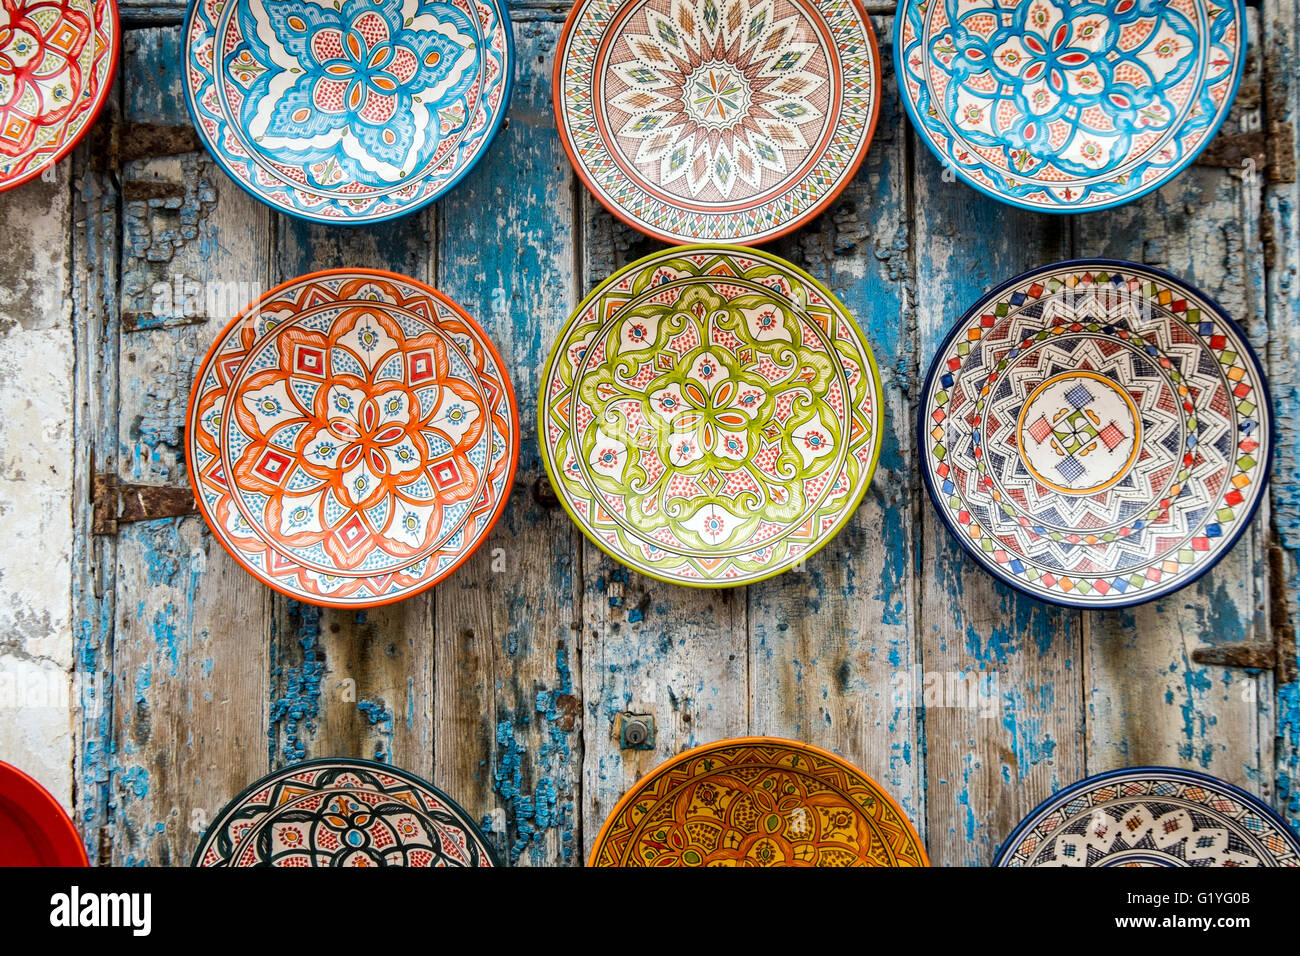 Captivating Souvenir Decorative Plates On A Wall In Essaouira ,Morocco